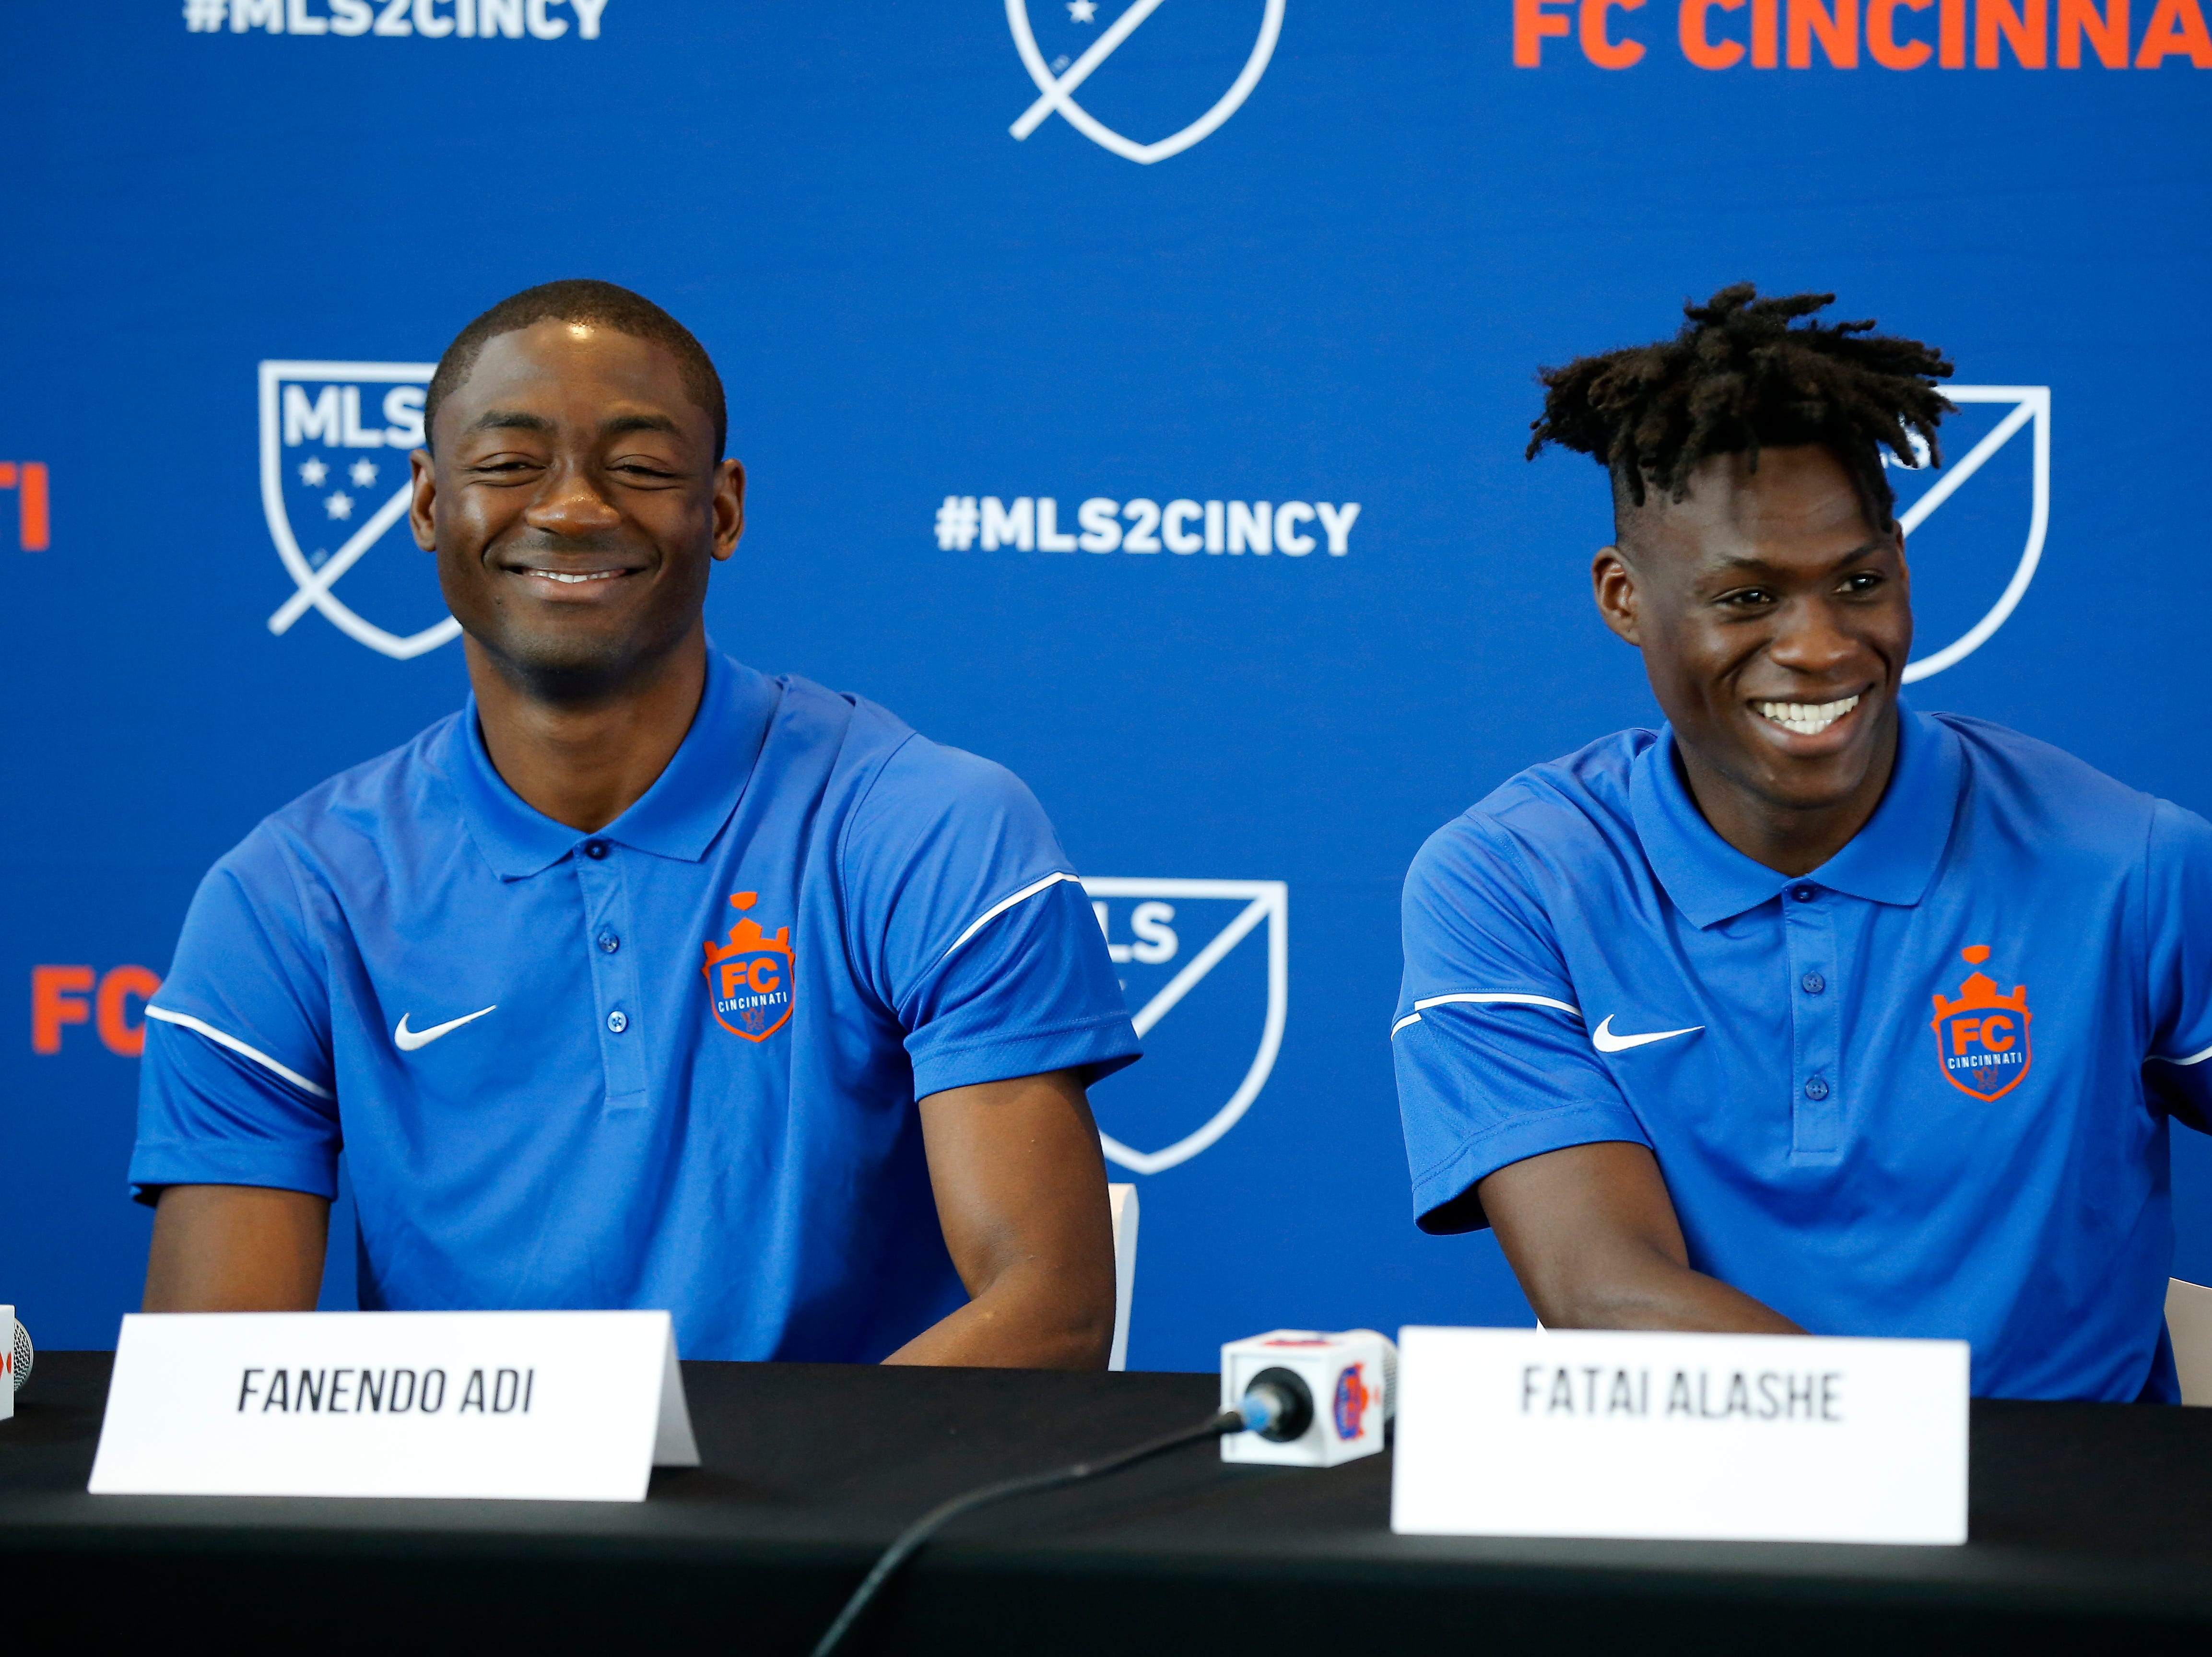 New FC Cincinnati signees Fanendo Adi and Fatai Alashe take questions during a press conference at Nippert Stadium in Cincinnati on Monday, July 30, 2018.